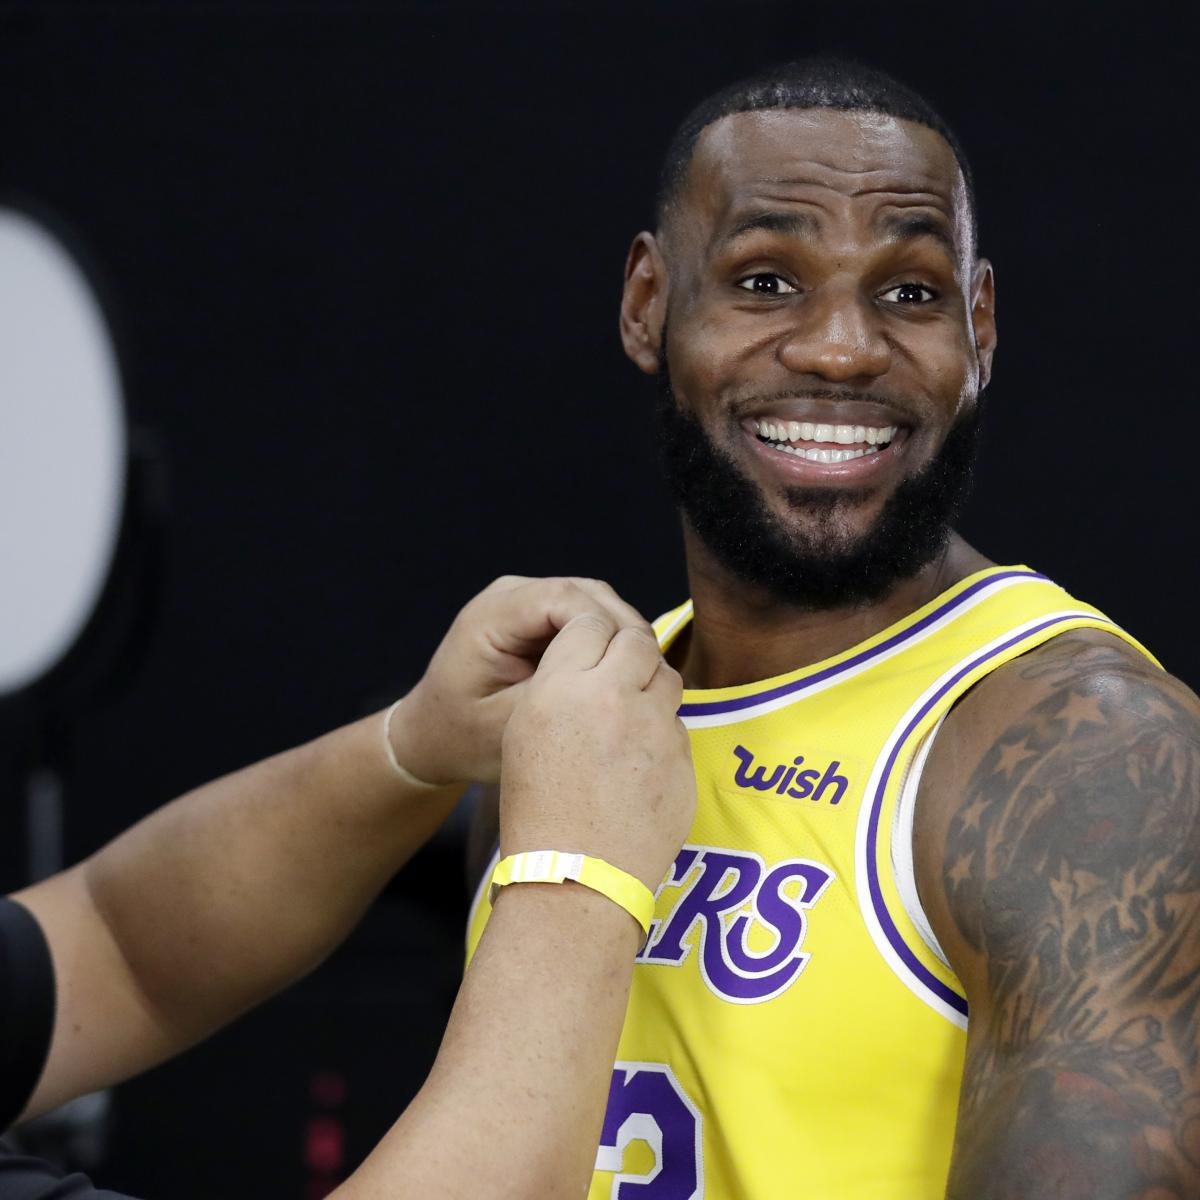 Lakers Media Day 2018: LeBron James, Lonzo Ball Interviews, Photos, Video, More